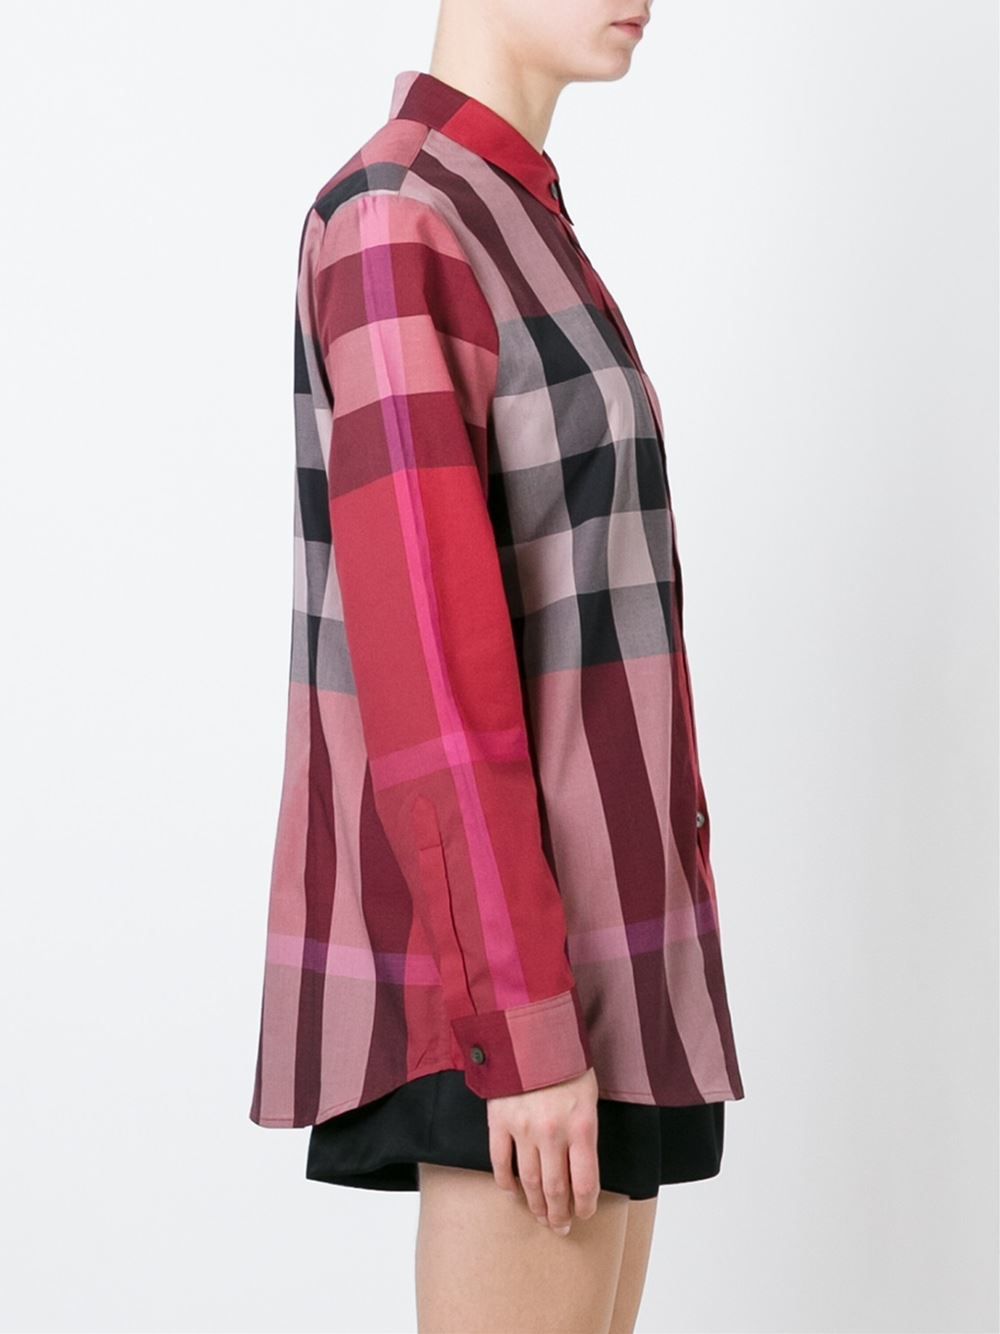 Lyst burberry brit checked shirt in red for Burberry brit checked shirt